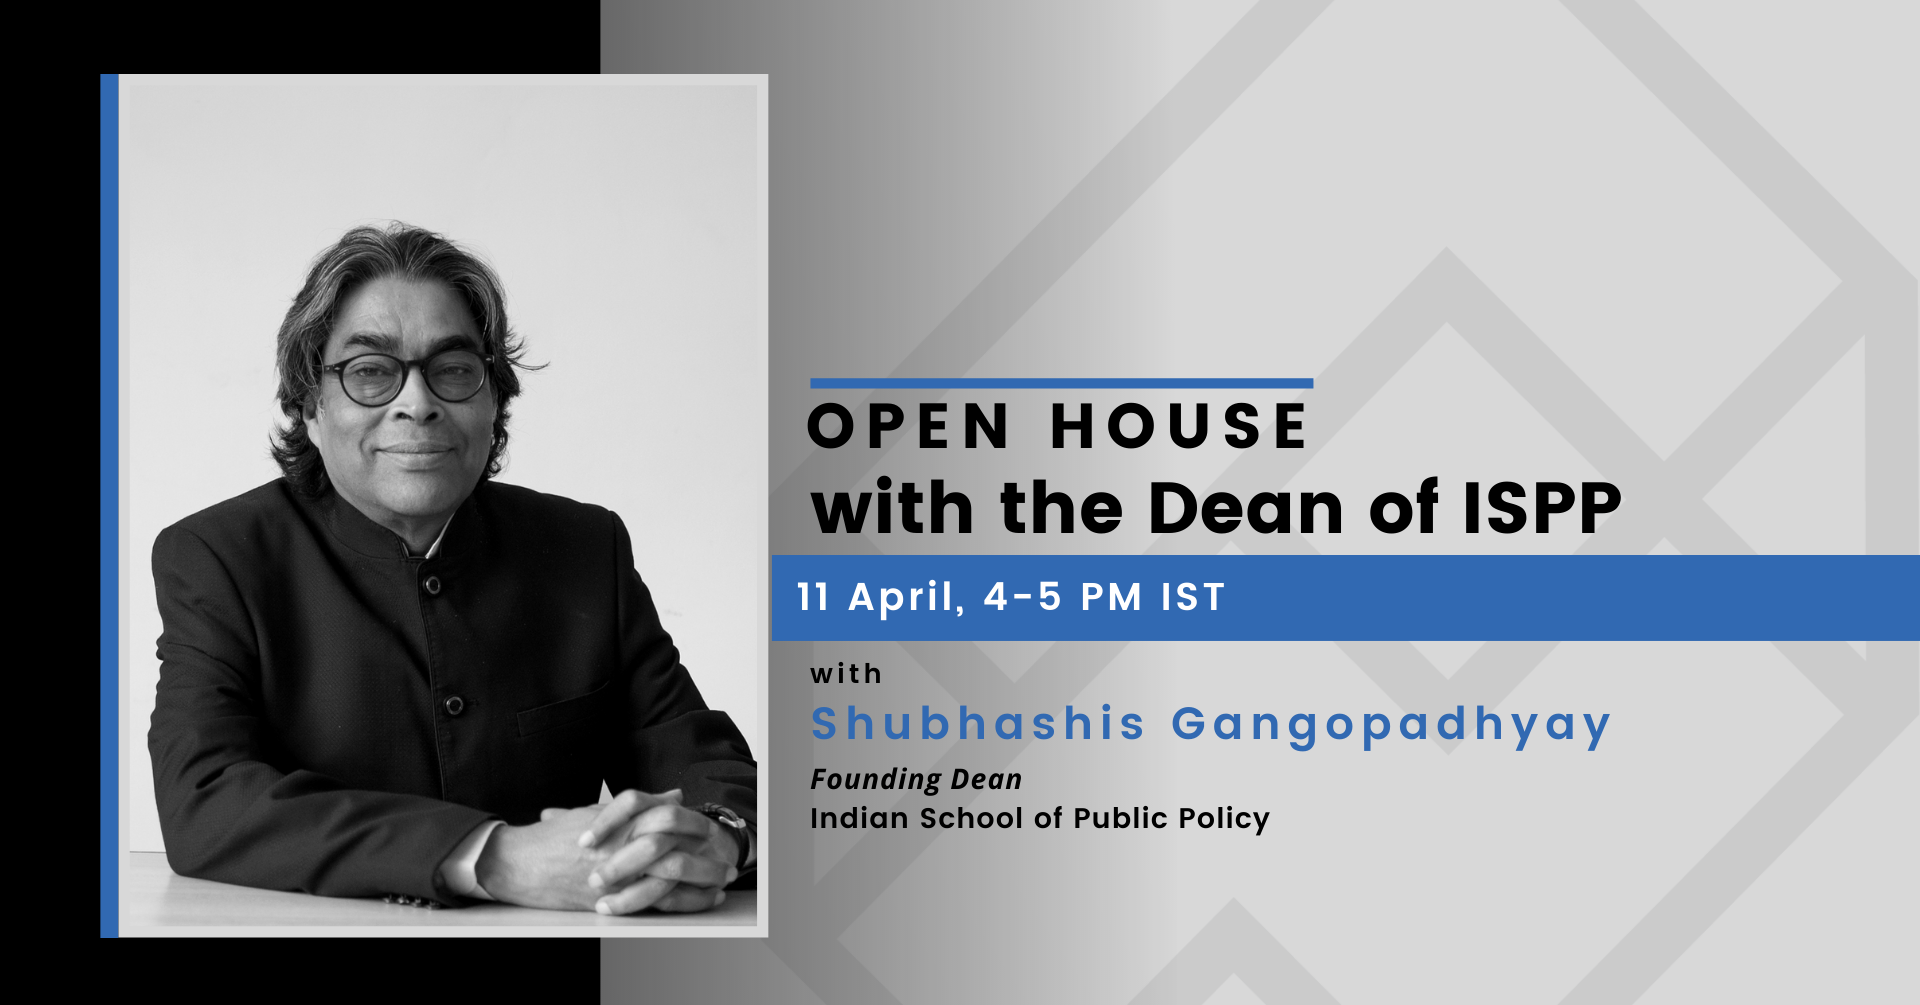 Open House with the Dean